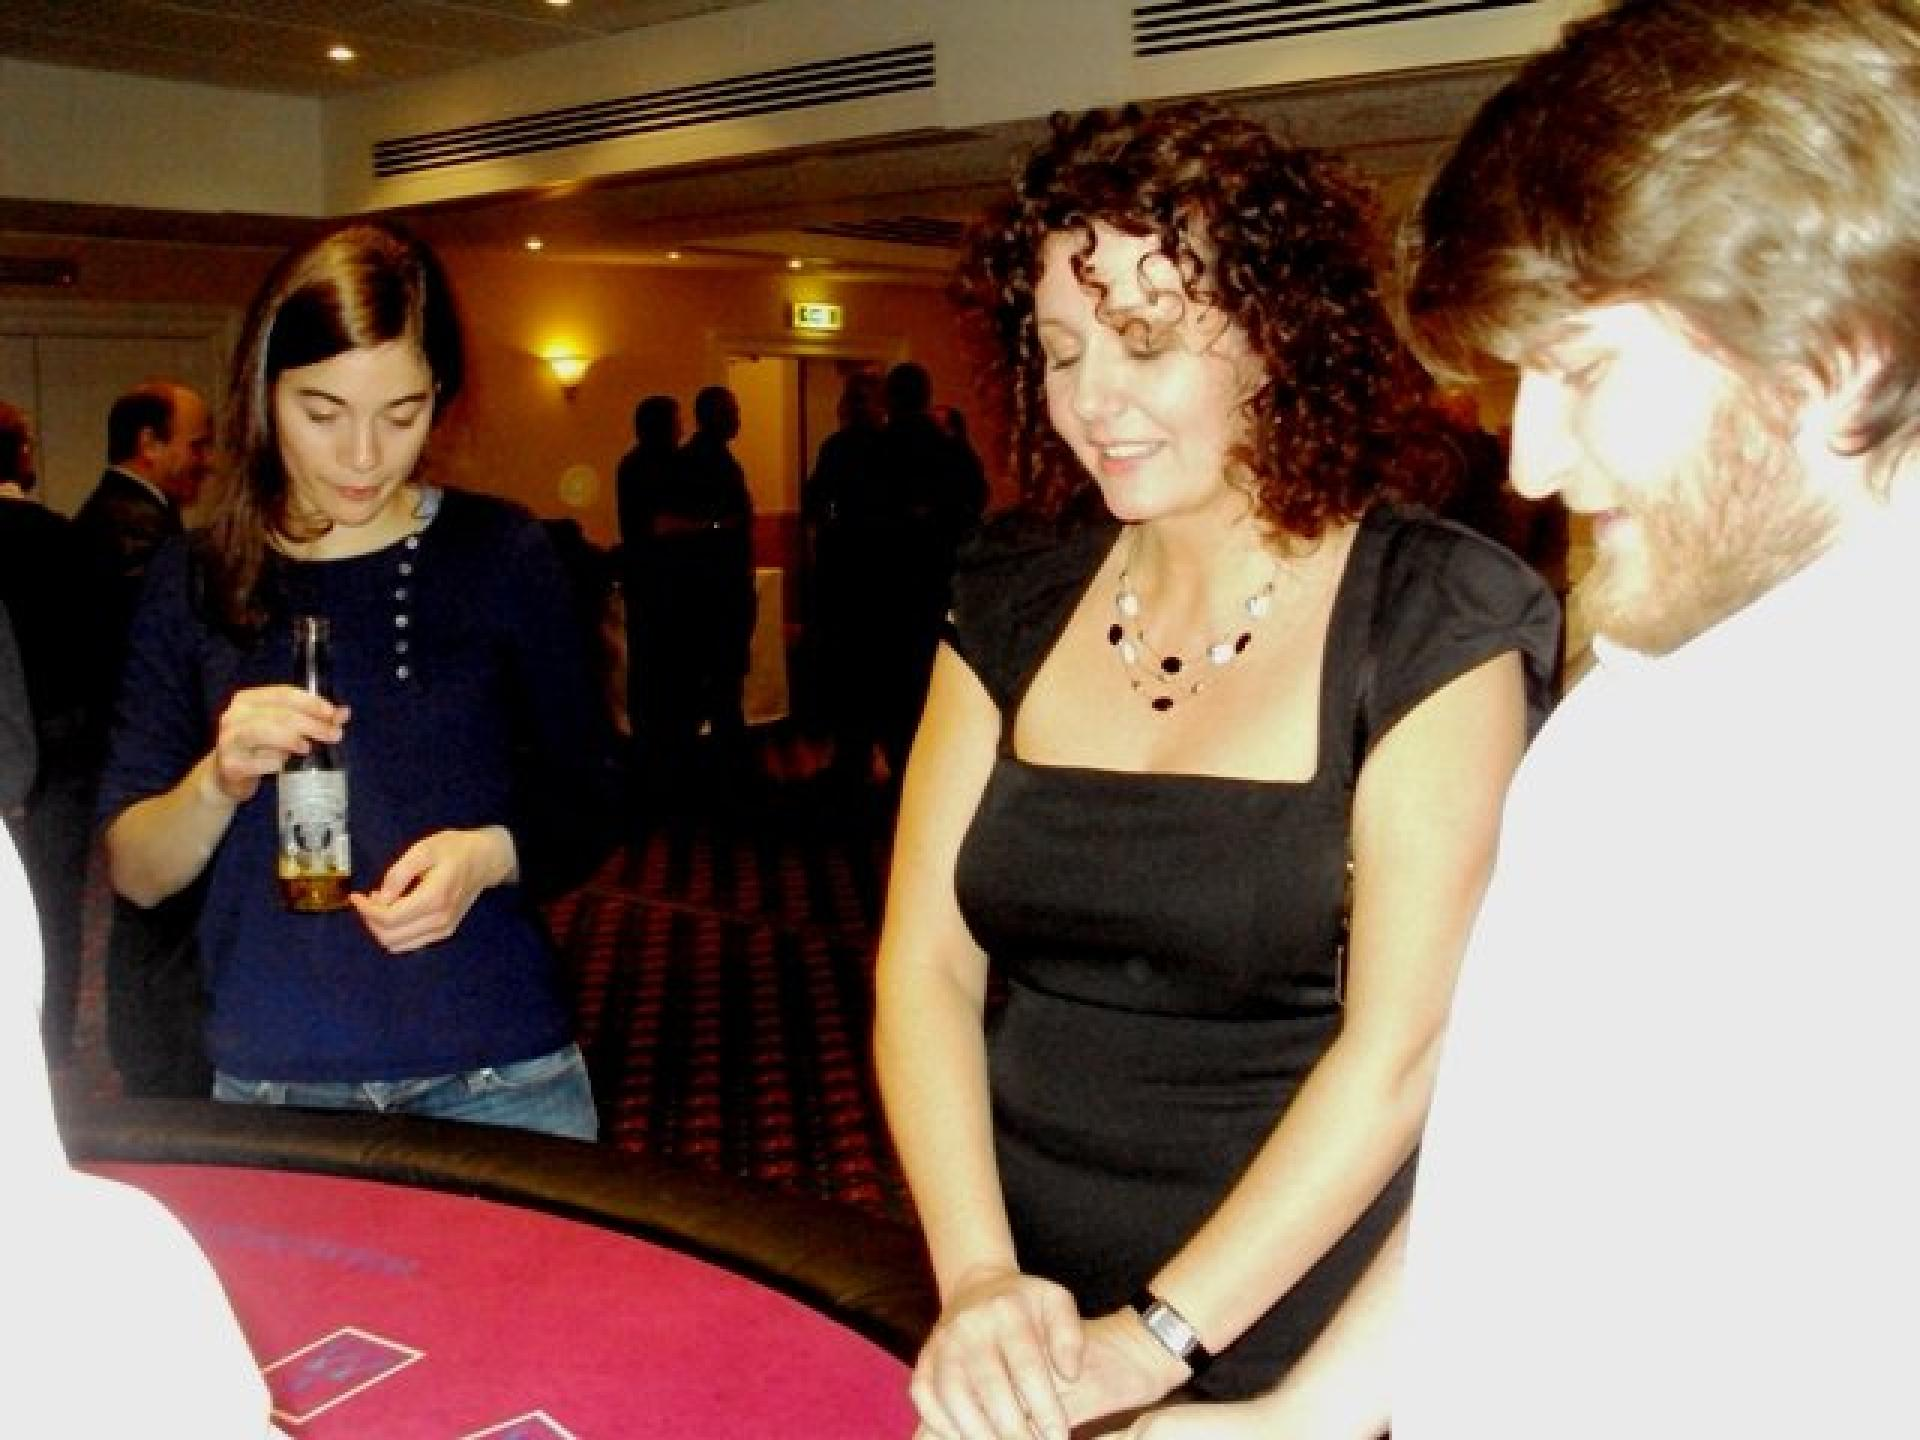 Fun Casino Night Evening Entertainment 31